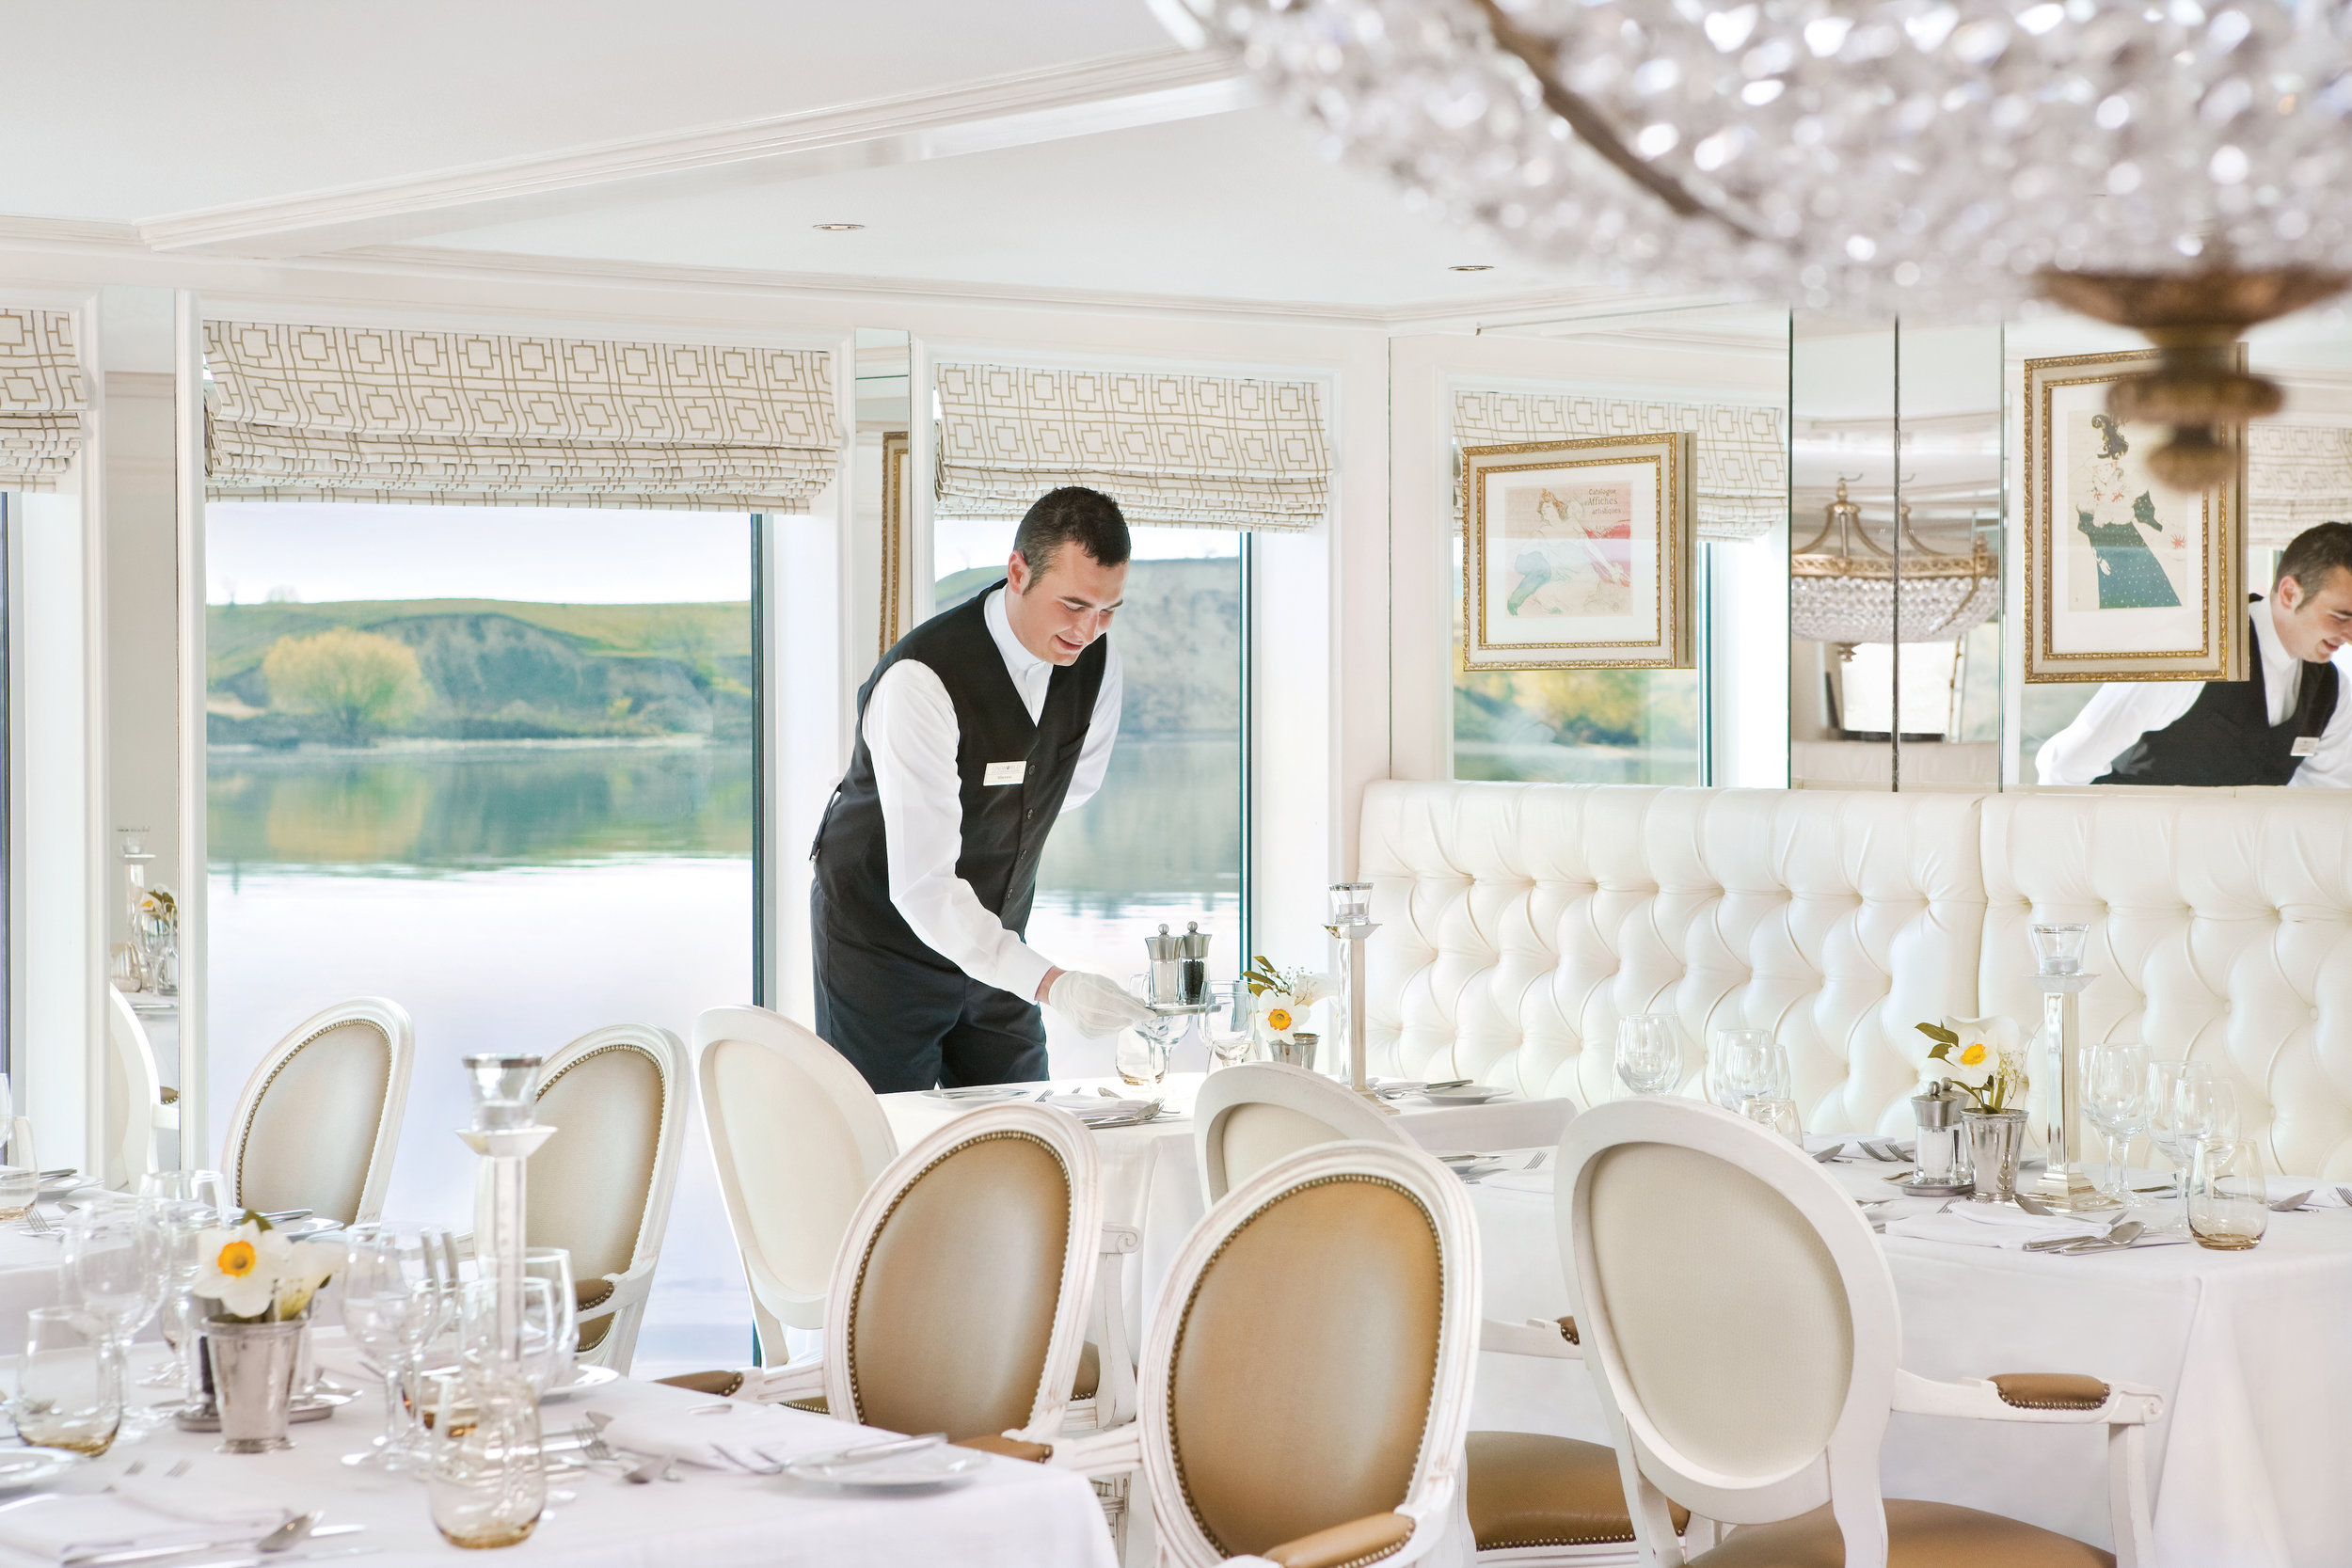 uniworld-boutique-river-cruises-river-countess-interior-restaurant-service-1.jpg